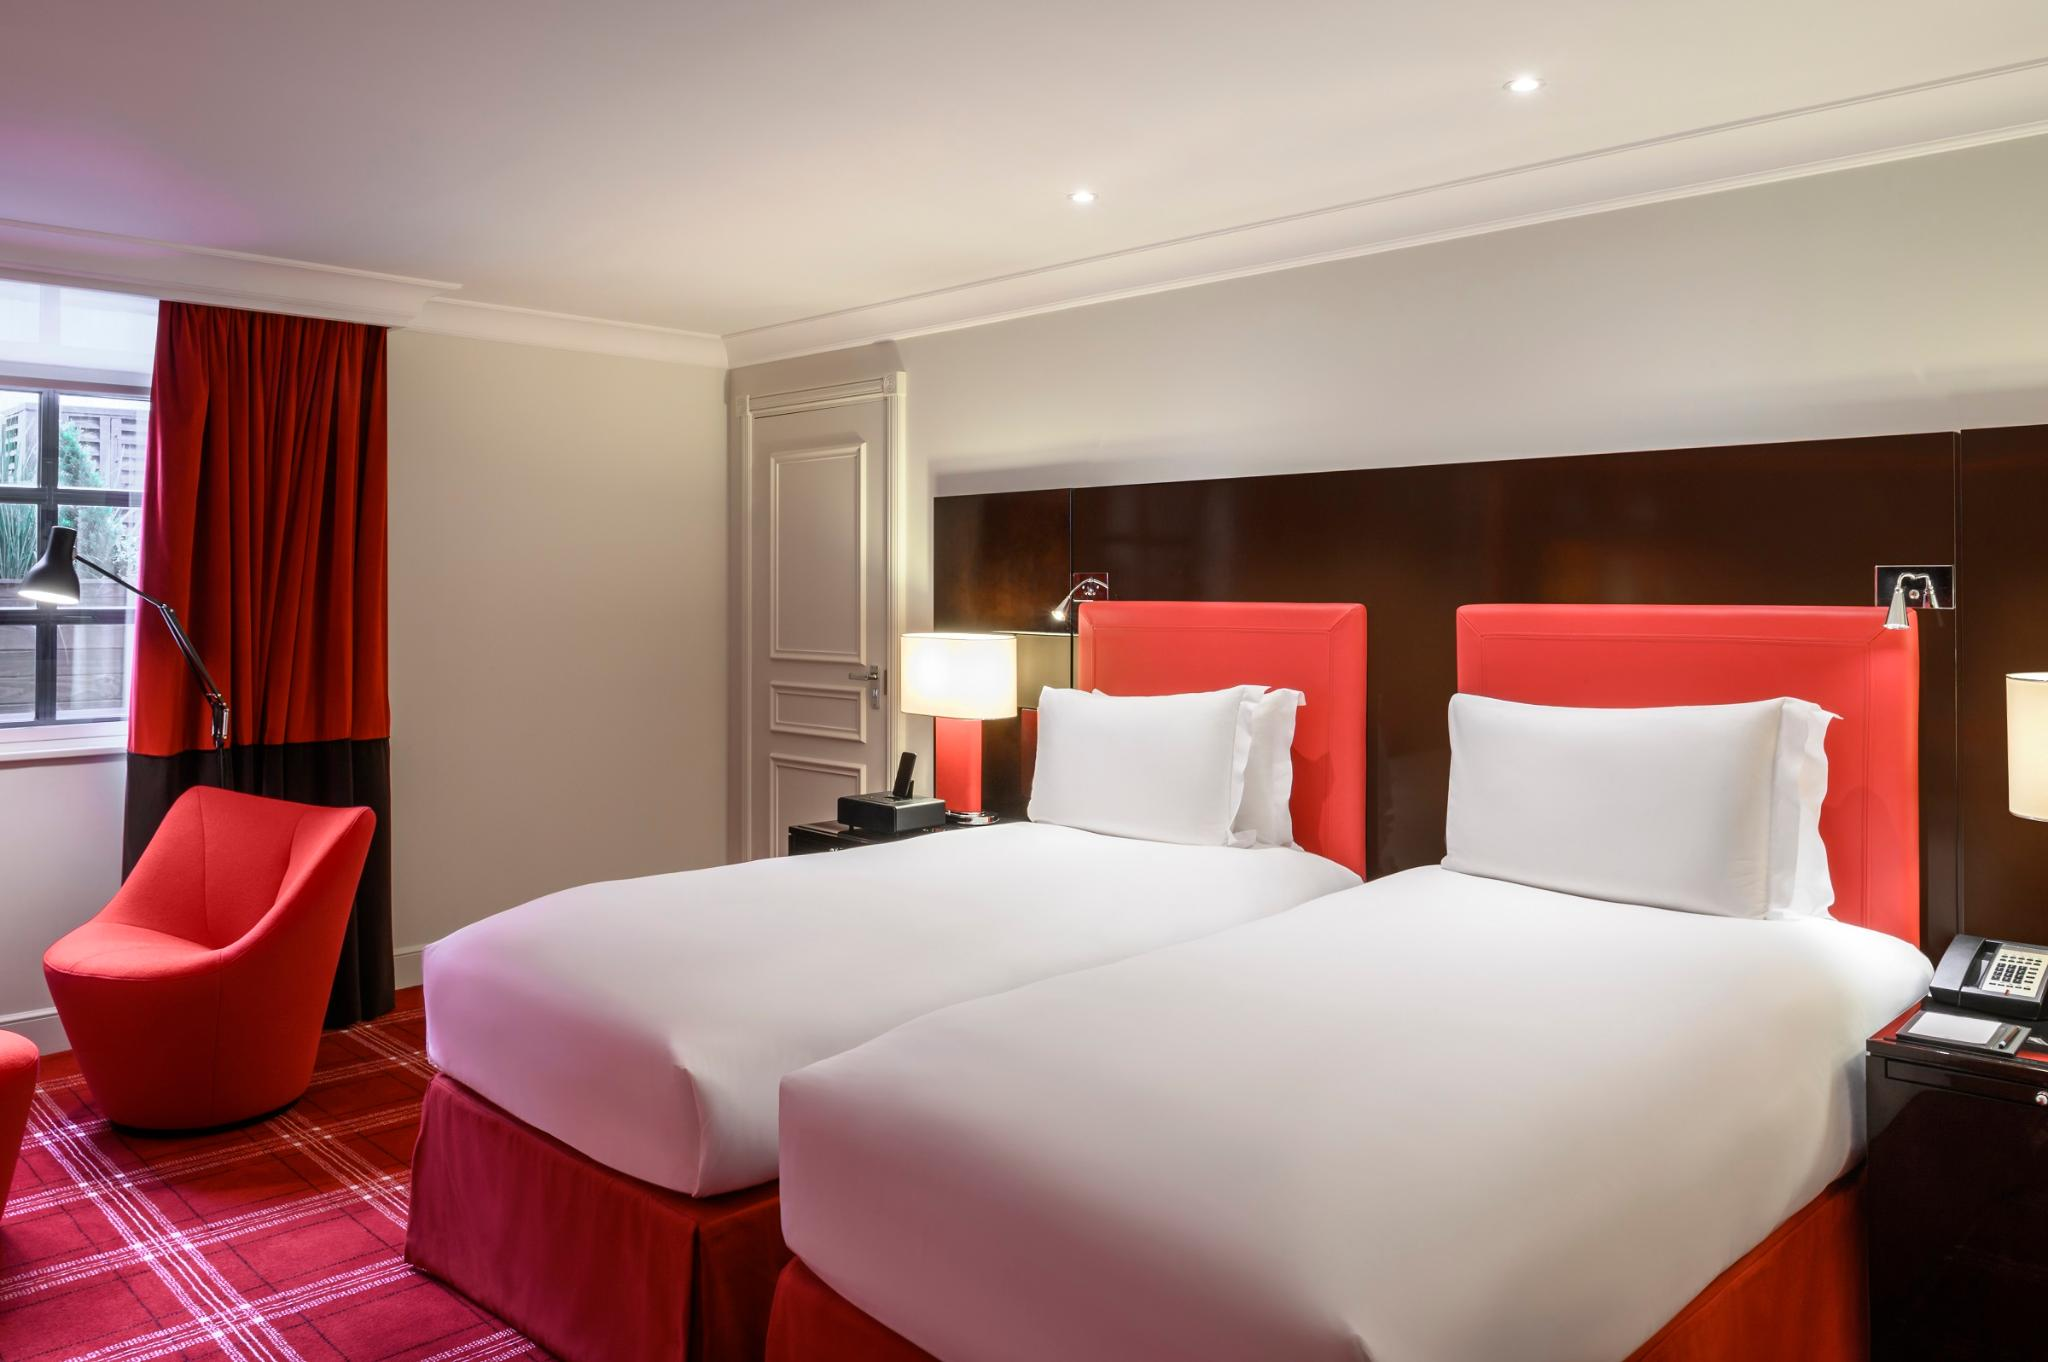 TWIN NEWLY DESIGNED LUXURY ROOM, 2 SINGLE BEDS